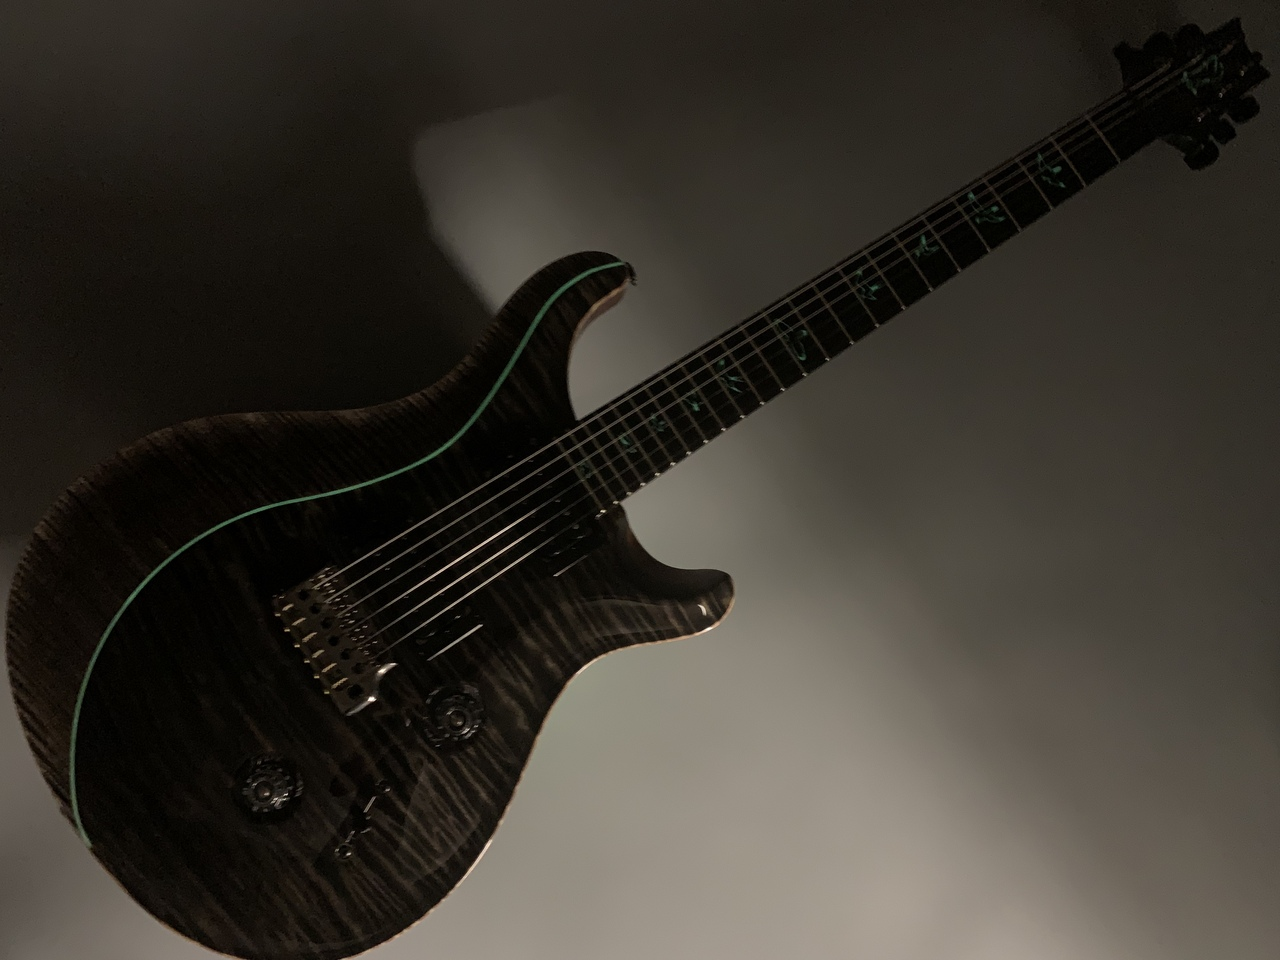 Private Stock #7660 Custom24 Quilted and Curly Maple Top w/ Luminlays Purfling【プレイ動画有り】のボディバック-アップ画像